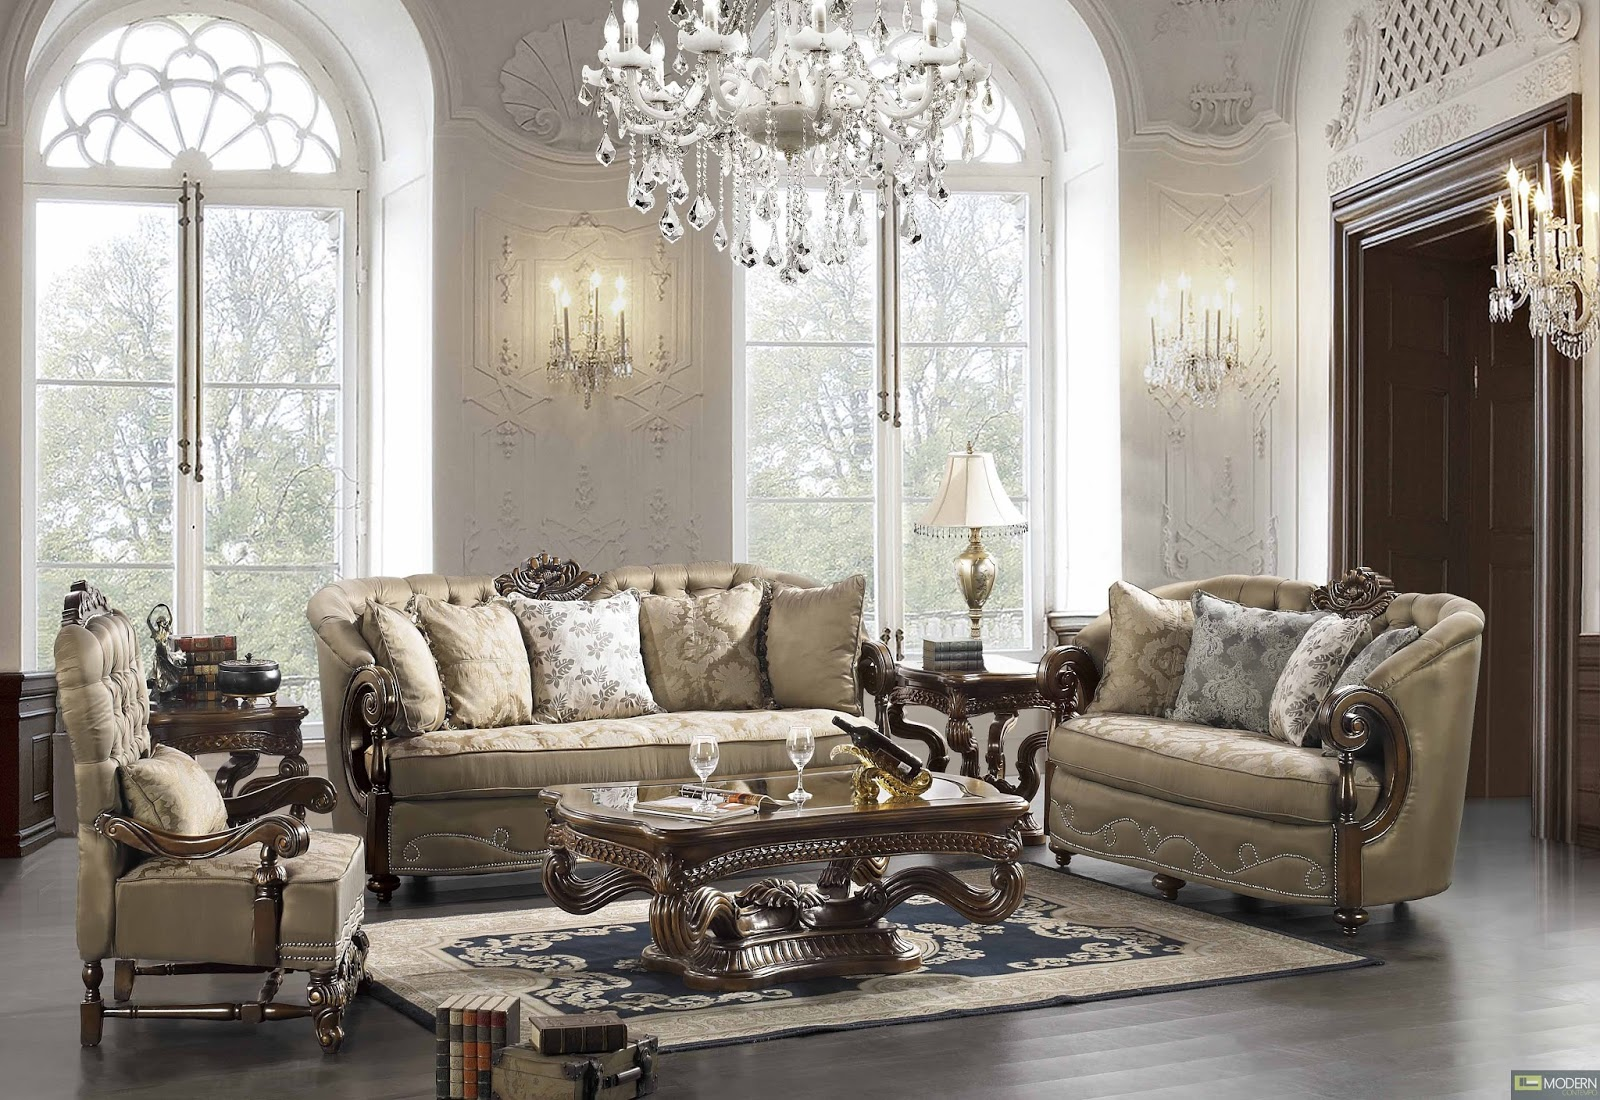 Best Furniture Ideas For Home Traditional Classic Furniture Styles Luxury Living Room Design